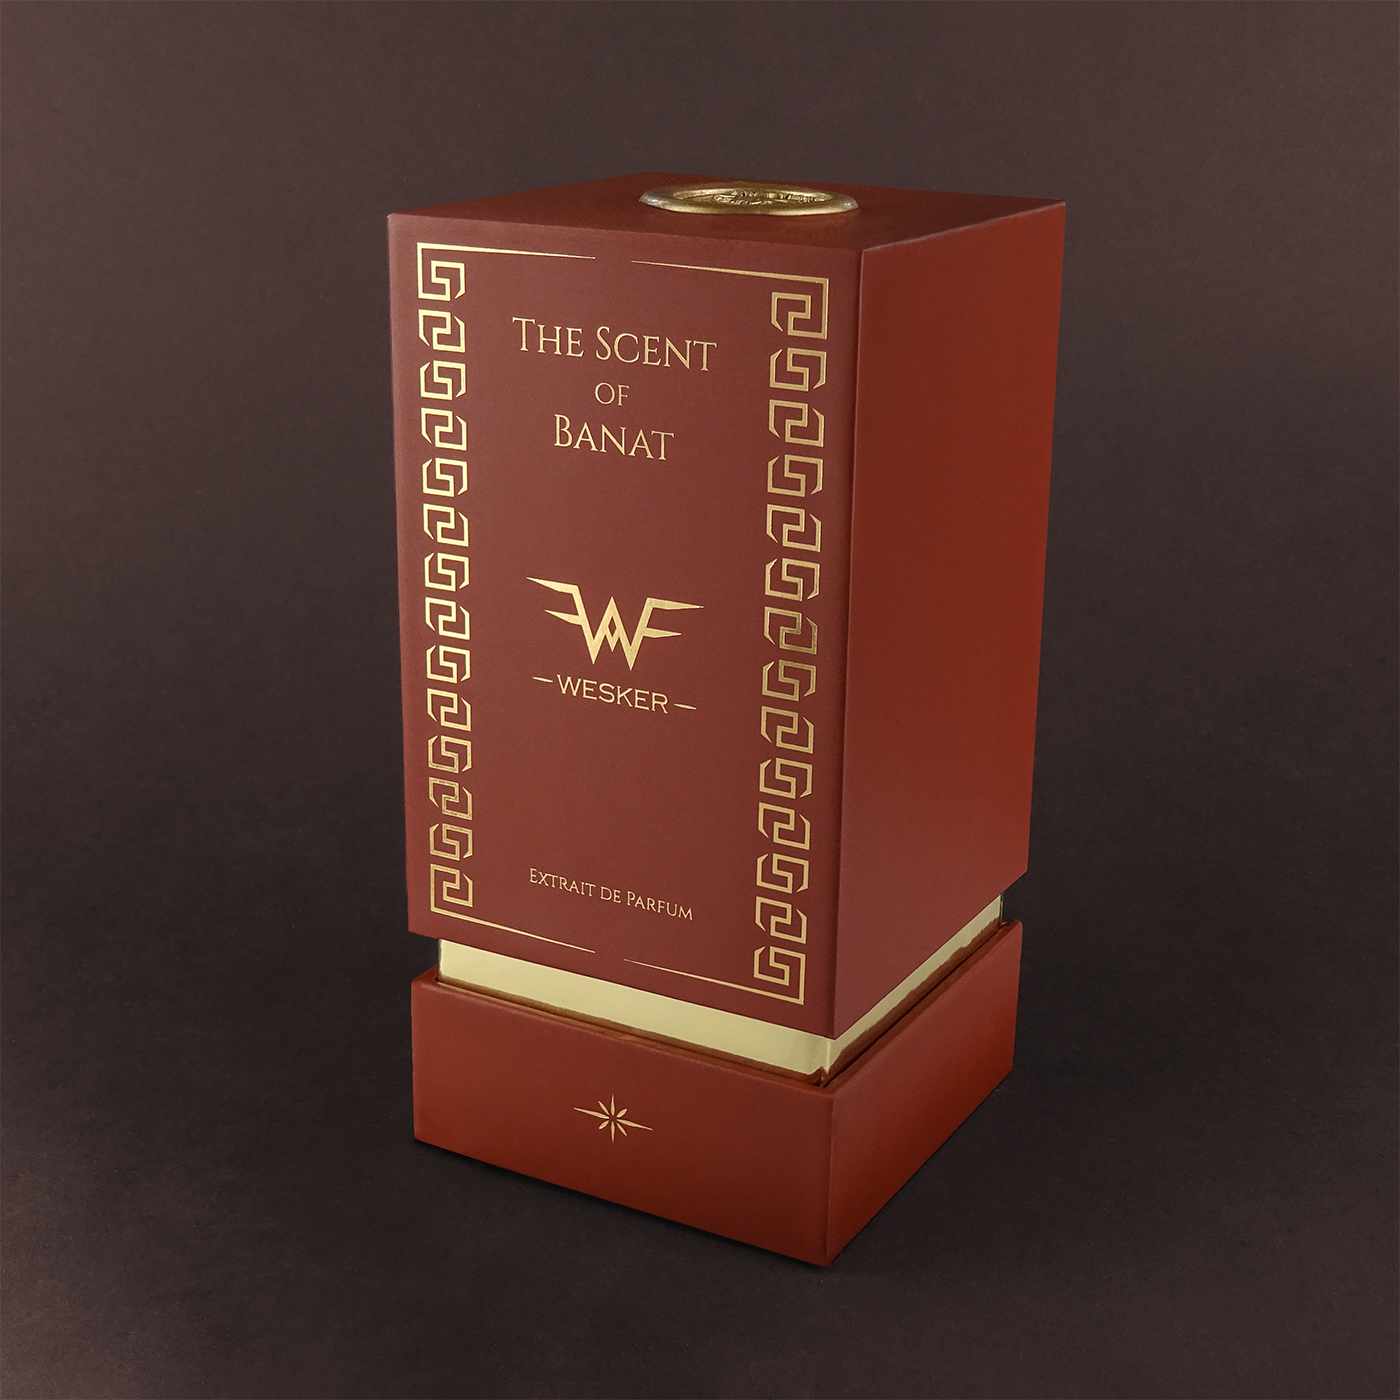 Wesker_The_Scent_of_Banat_Packaging_1x1